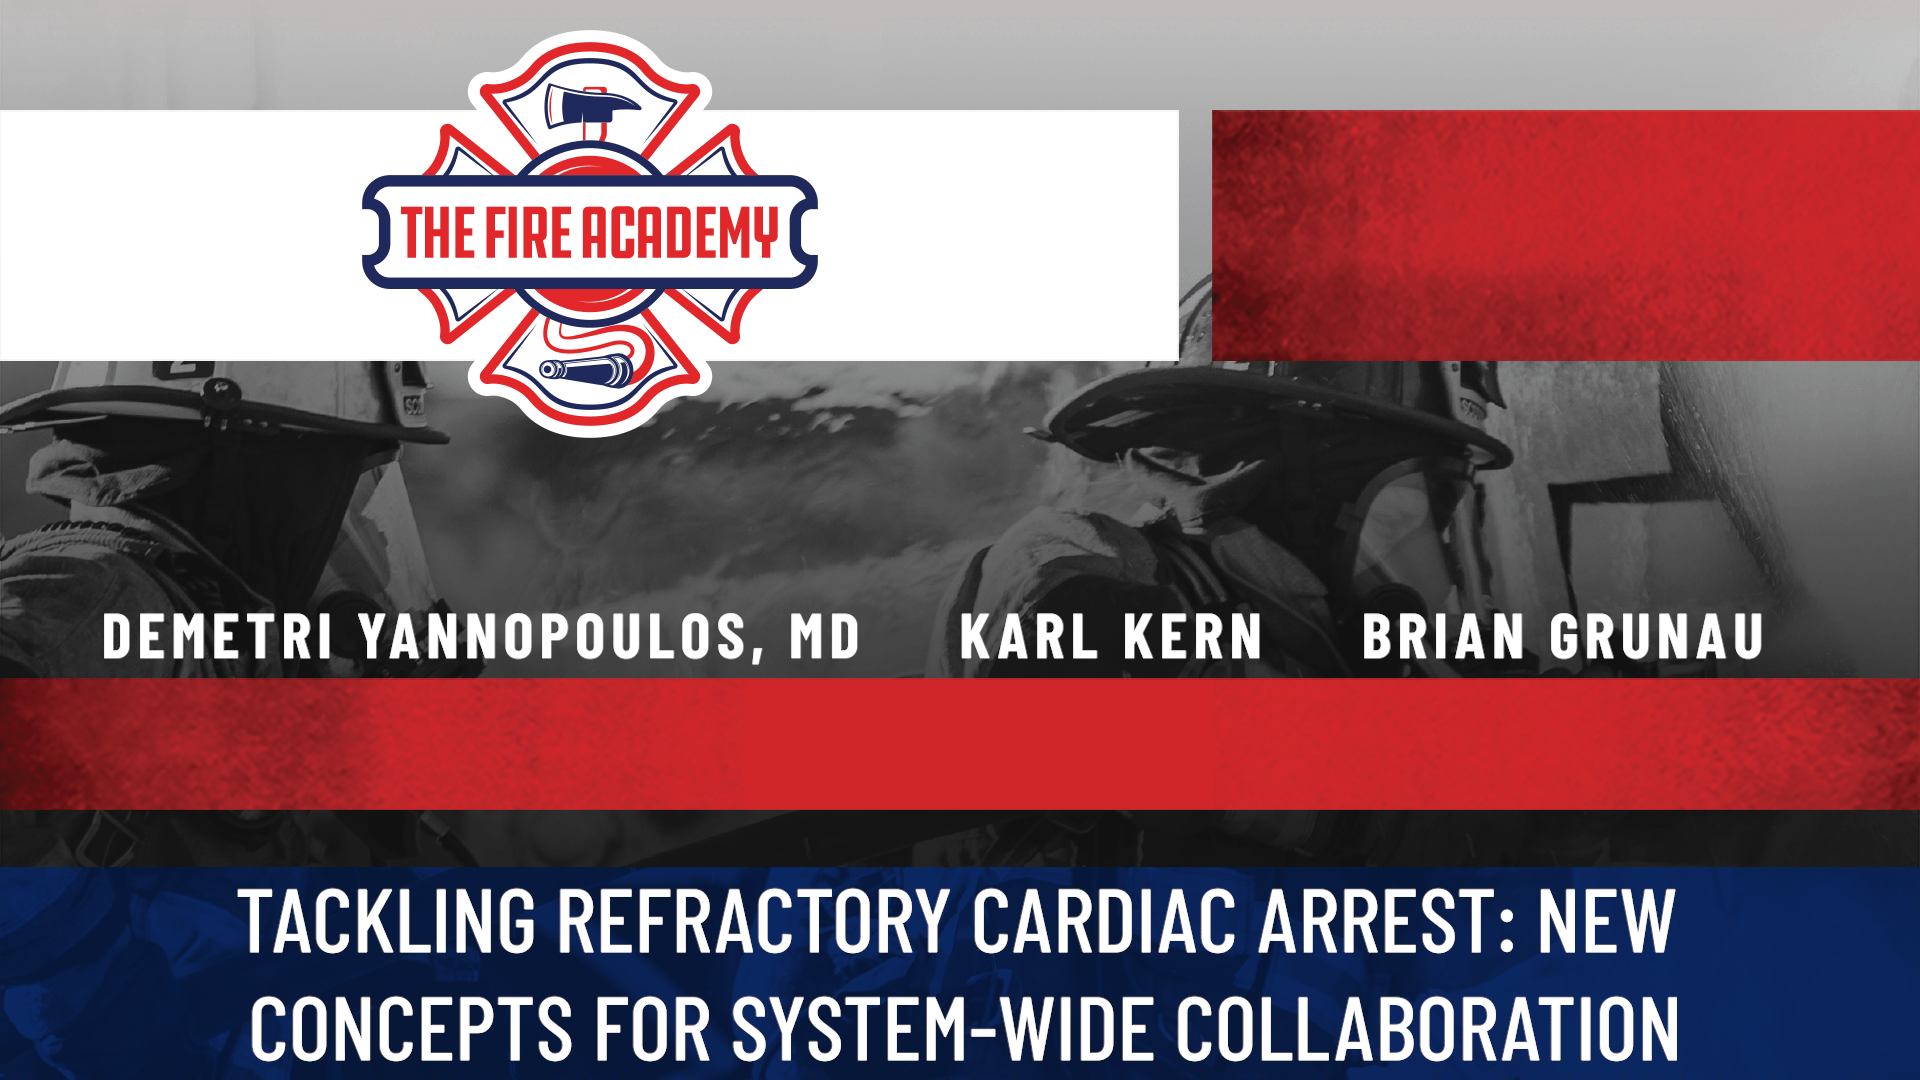 Tackling Refractory Cardiac Arrest: New Concepts for System-wide Collaboration